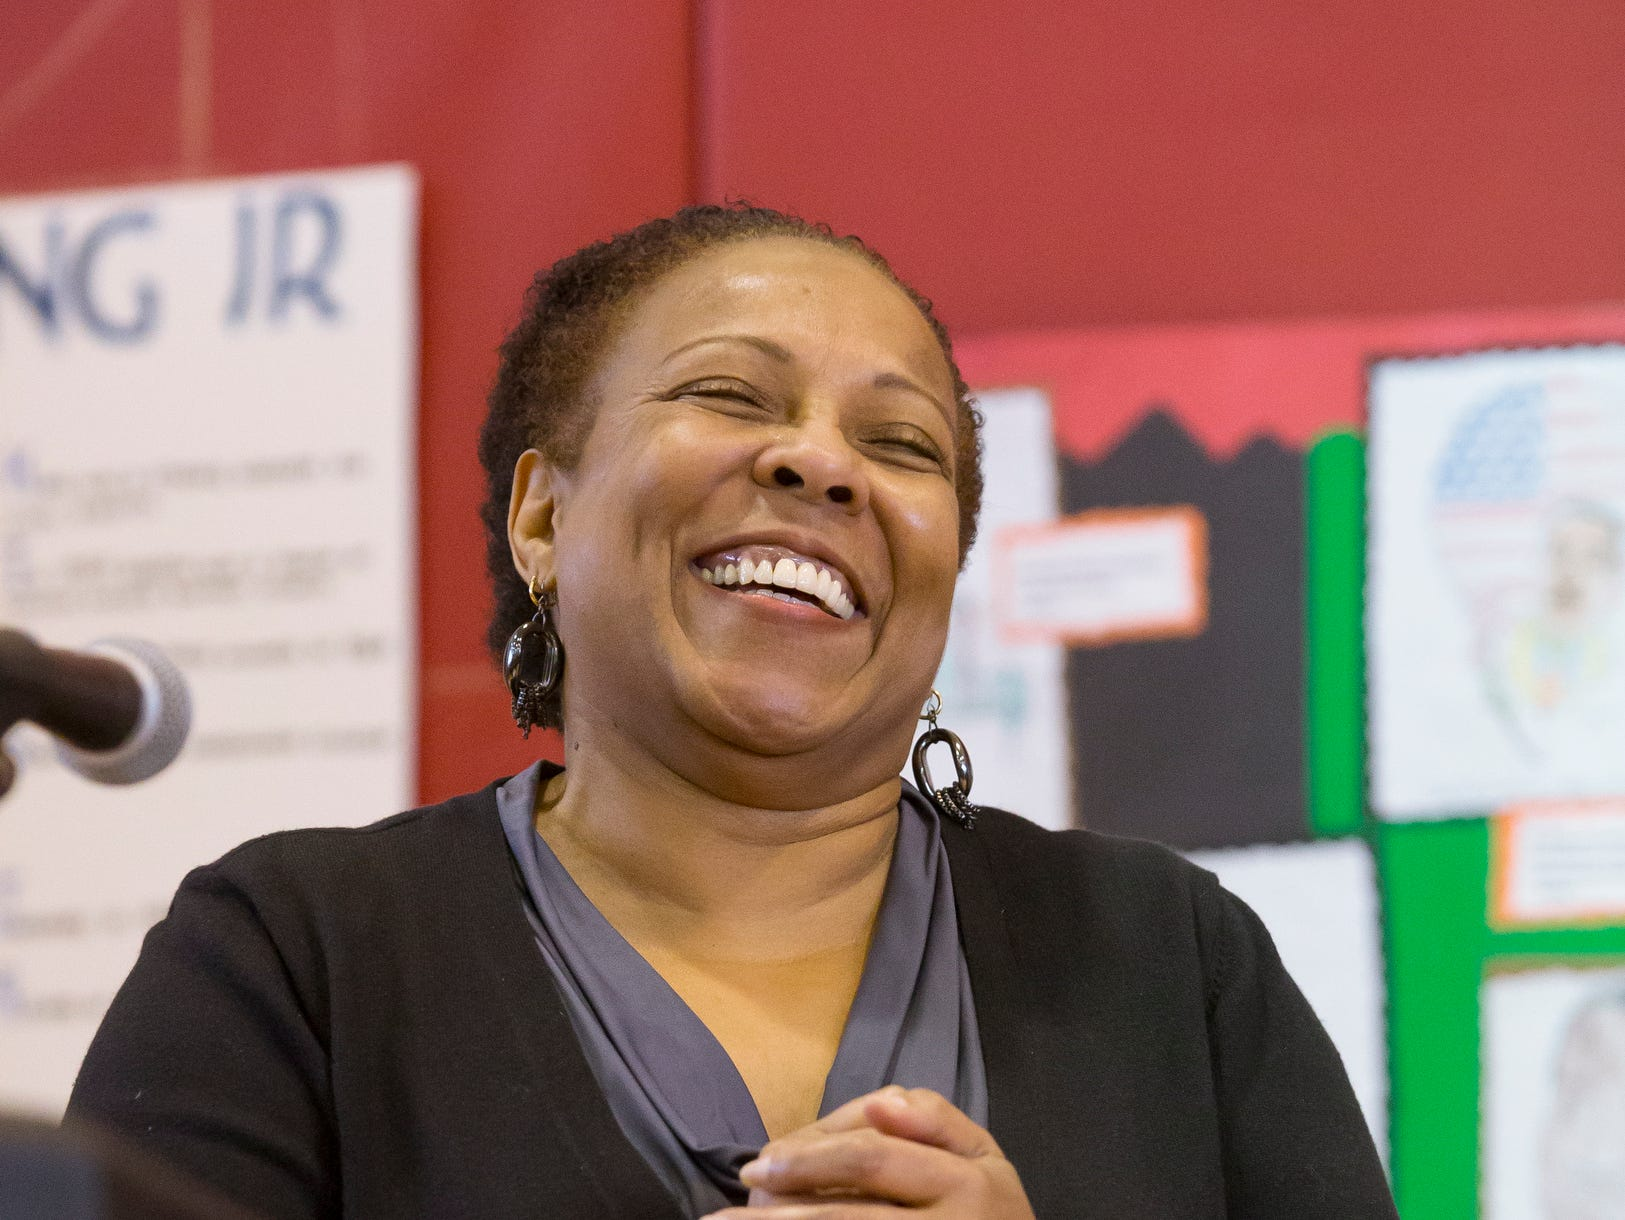 2015: Marcia Fort, the Director of the Greater Ithaca Activities Center waits for the applause to die down after she was introduced Saturday morning at the center's annual Martin Luther King Breakfast. Fort, in her last year as director, gave the keynote presentation.